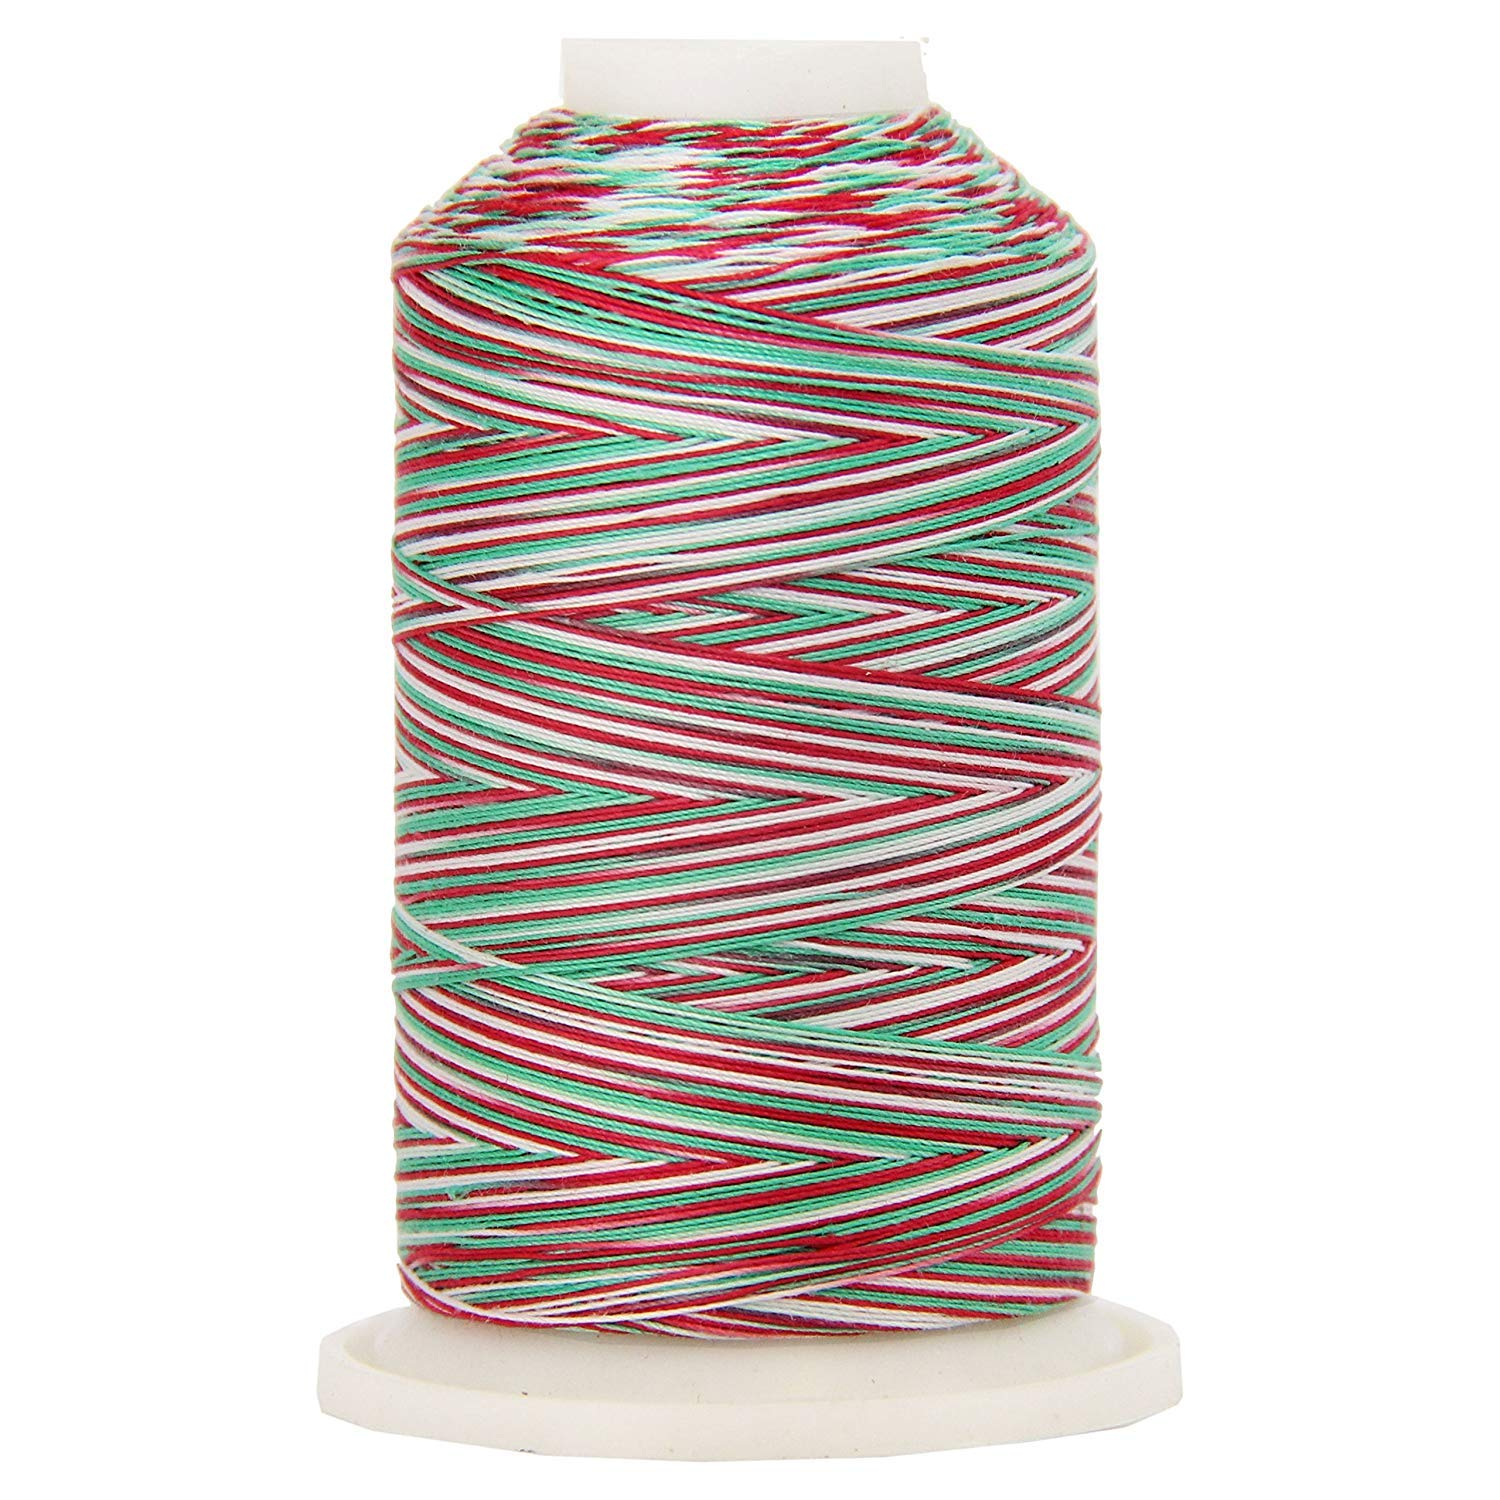 and Serging Color 2636 Wildflowers Sewing Threadart Variegated 100/% Cotton Thread 600M 22 Colors Available 40//3wt For Quilting